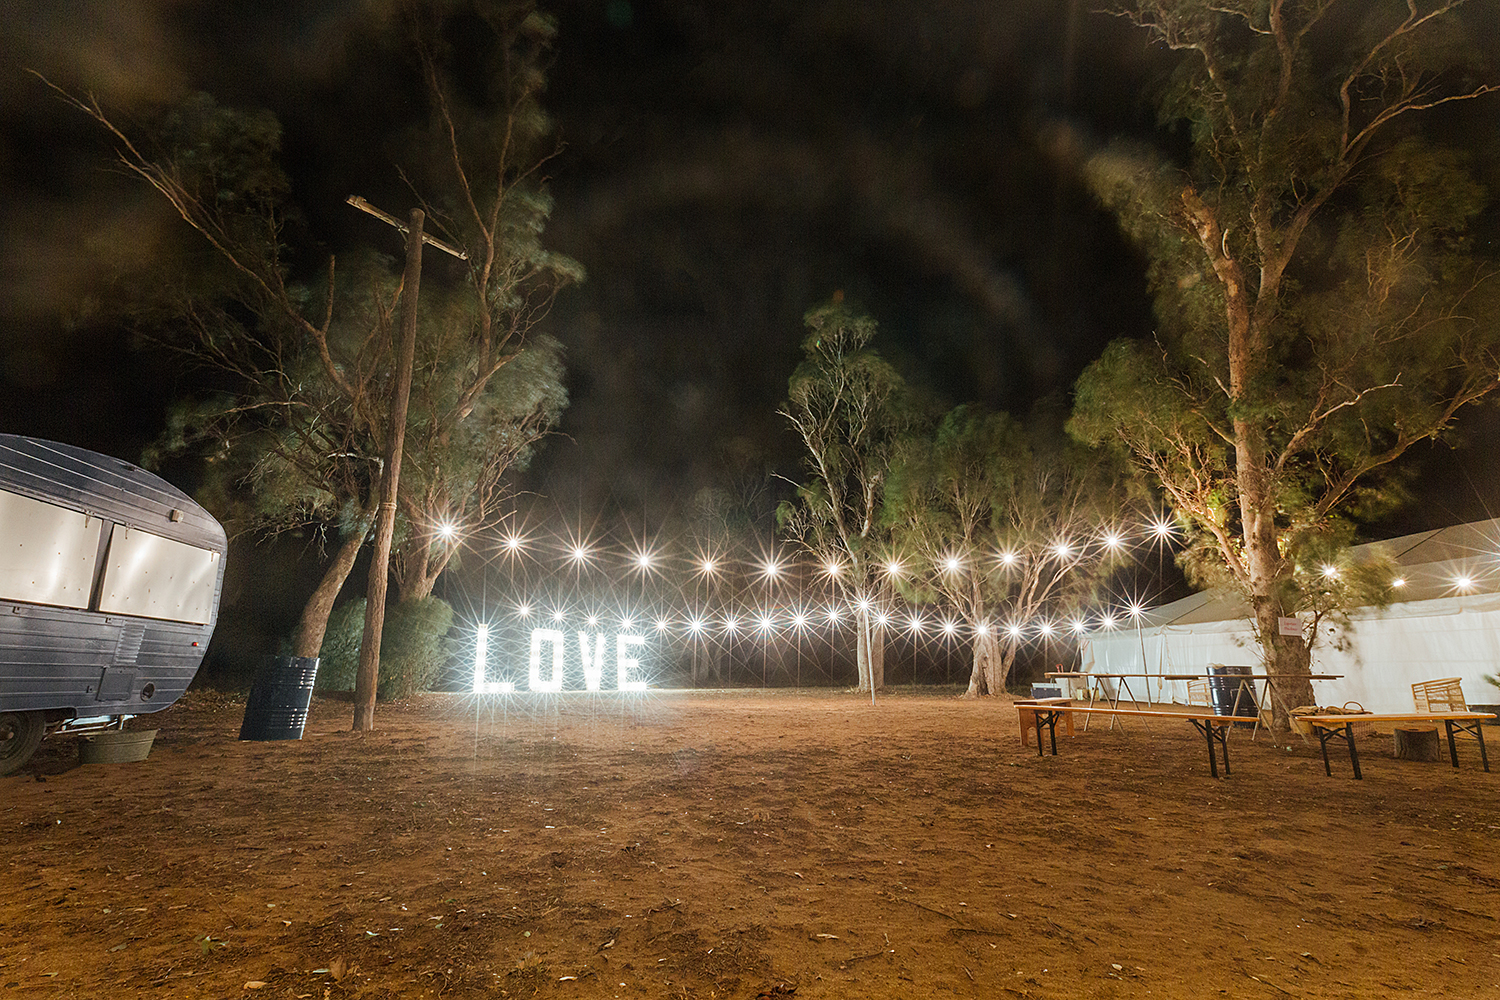 country nsw rusitc wedding photography love sign